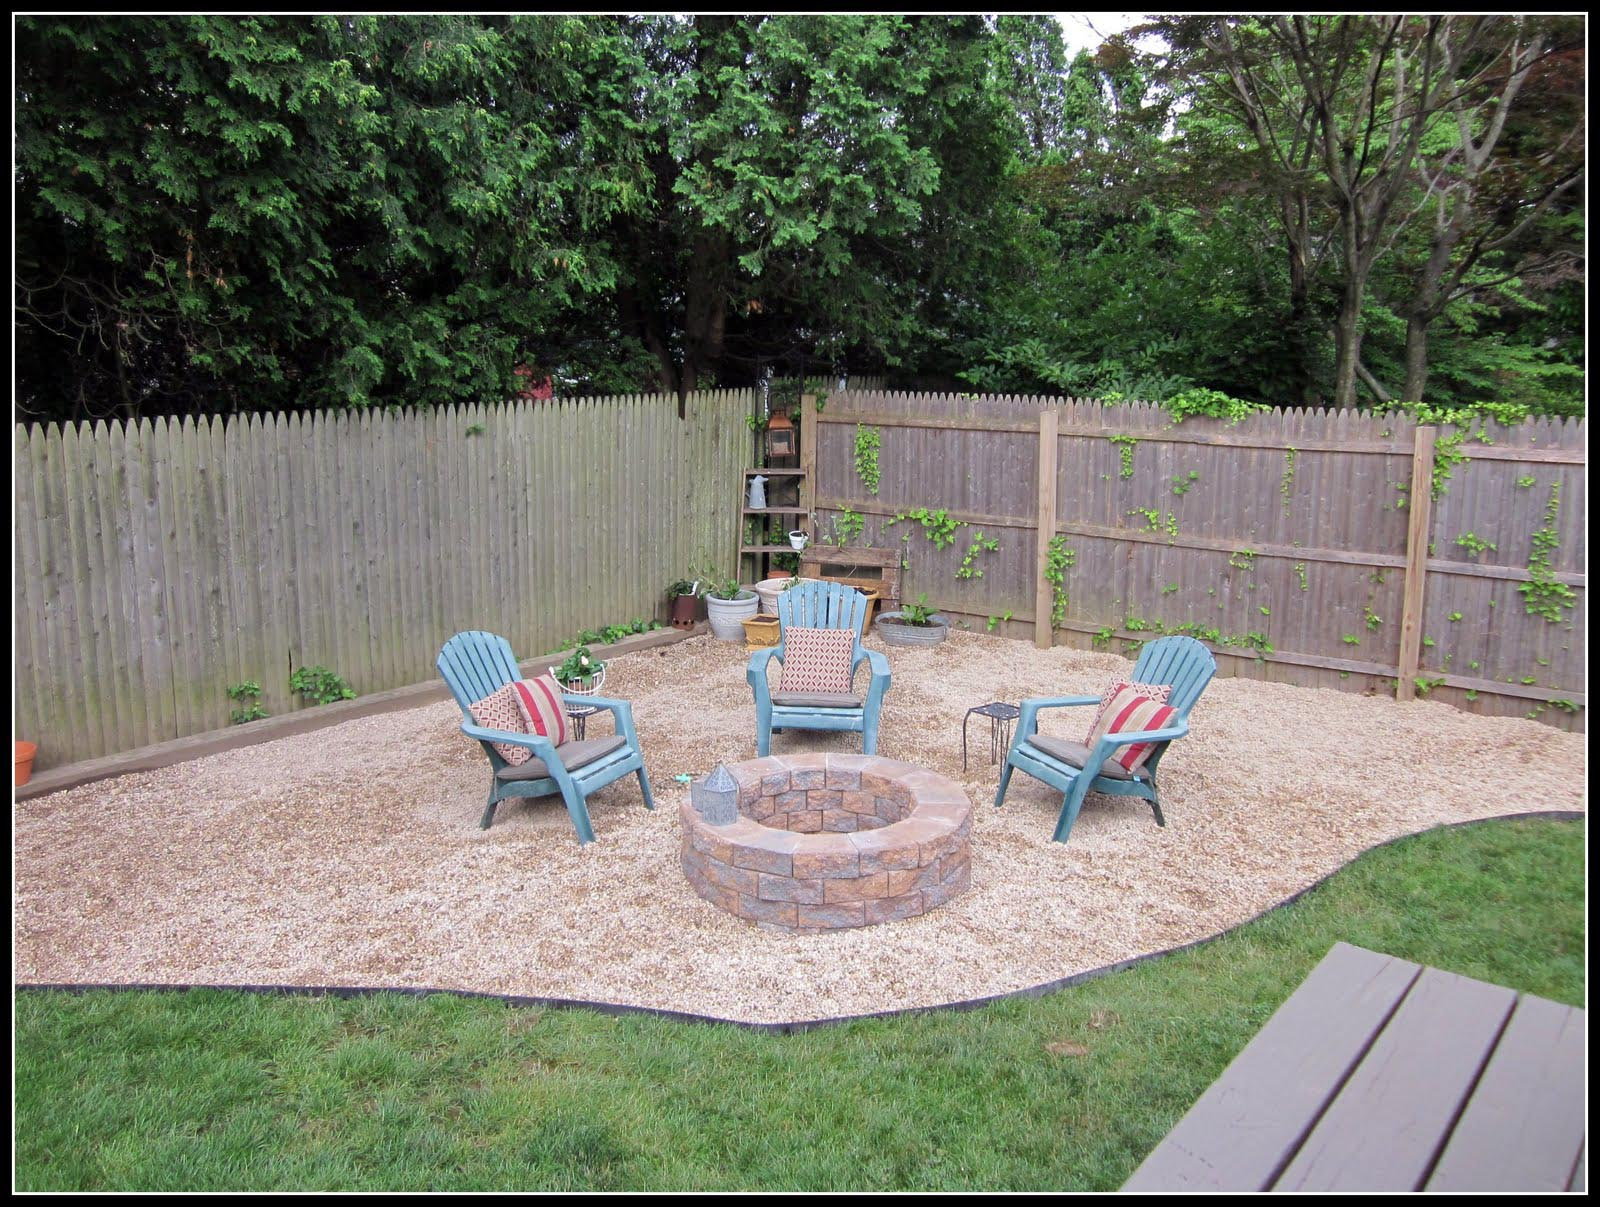 Wheel Rim Fire Pit Instructions Fire Pit Design Ideas